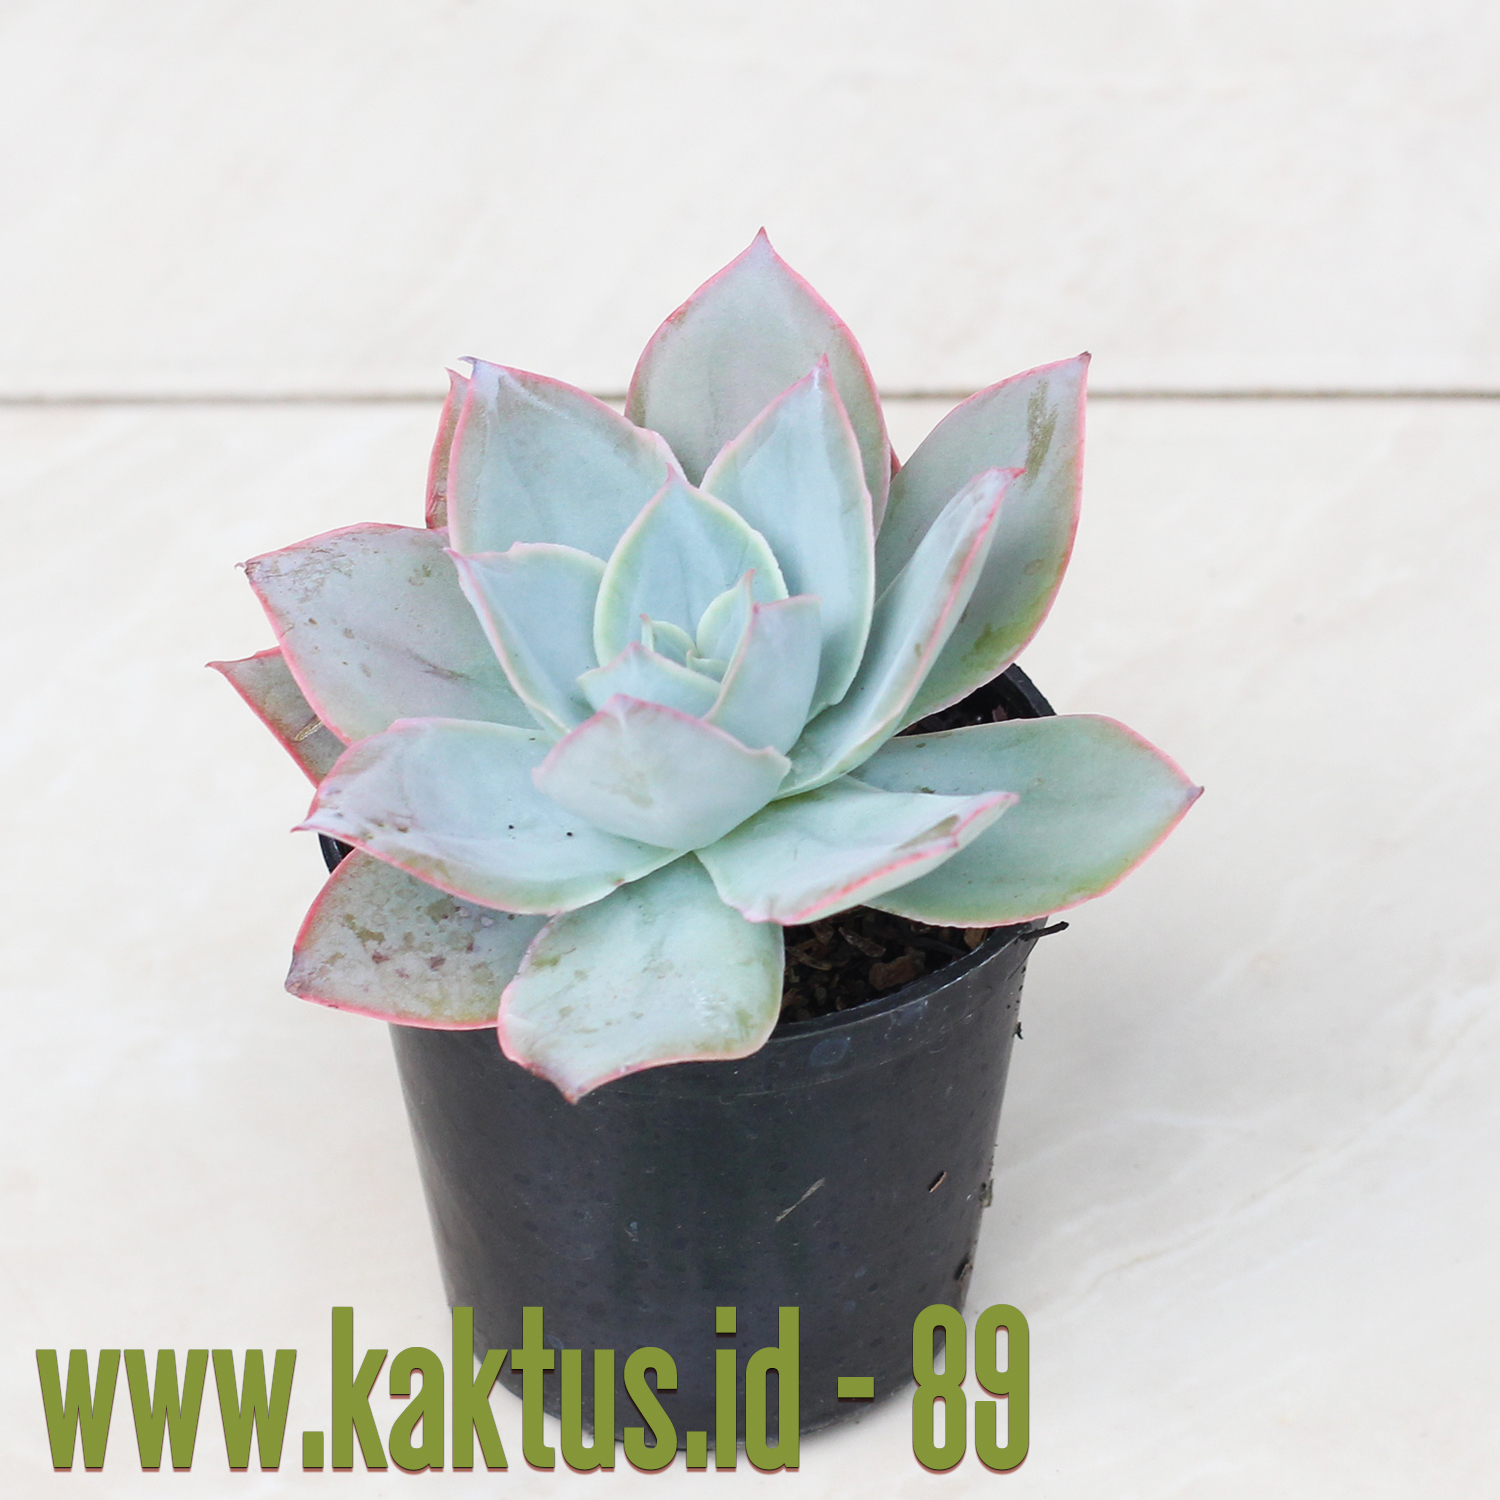 Echeveria Cante Pink Leaves